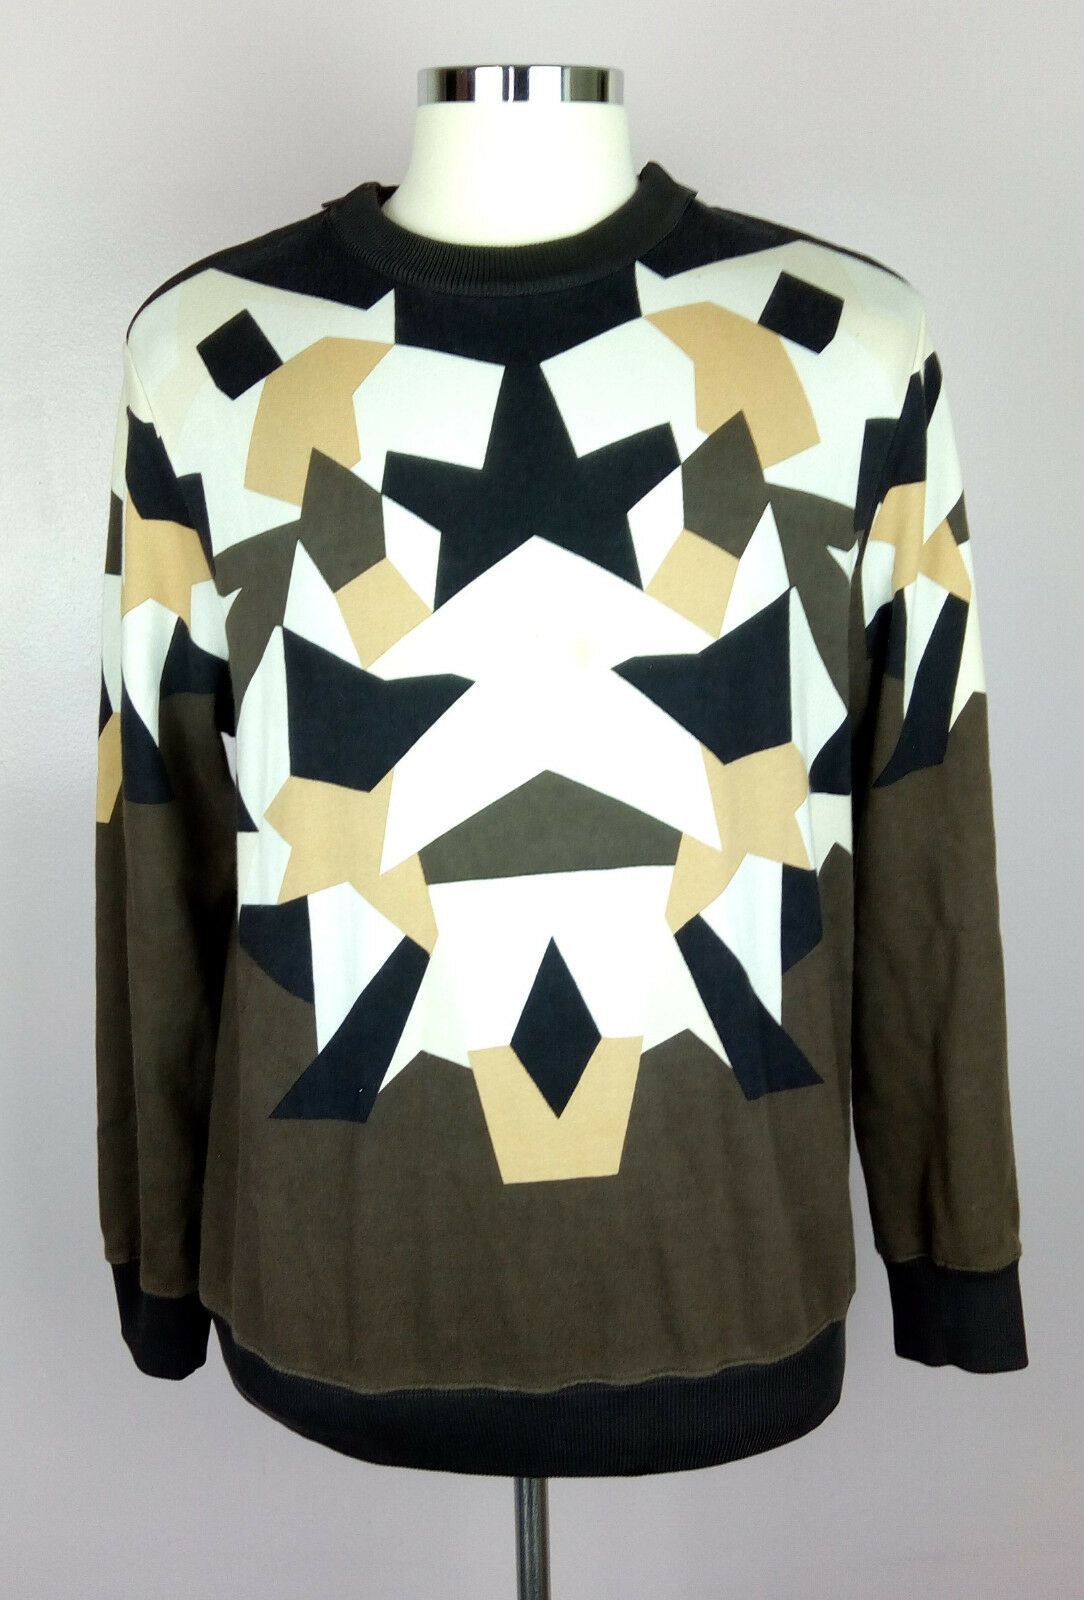 100% Authentic GIVENCHY 13A Abstract Print Columbian Fit Sweatshirt Sz S (Fit L)